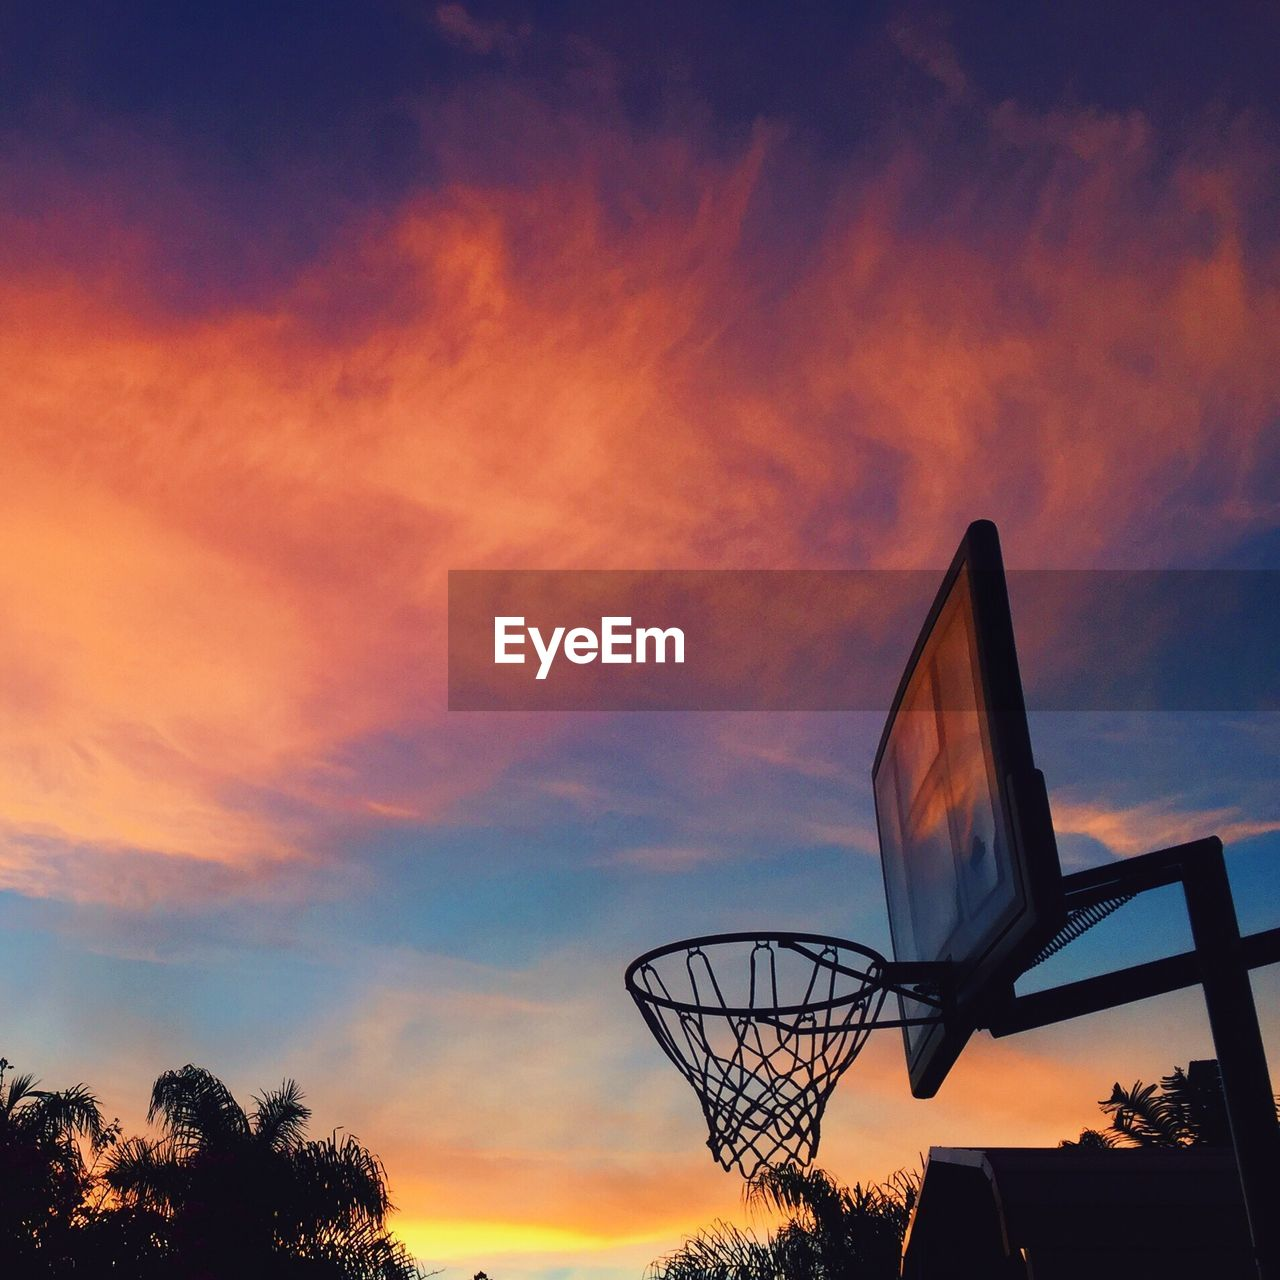 sunset, orange color, sky, cloud - sky, silhouette, beauty in nature, basketball hoop, nature, tree, low angle view, basketball - sport, no people, outdoors, day